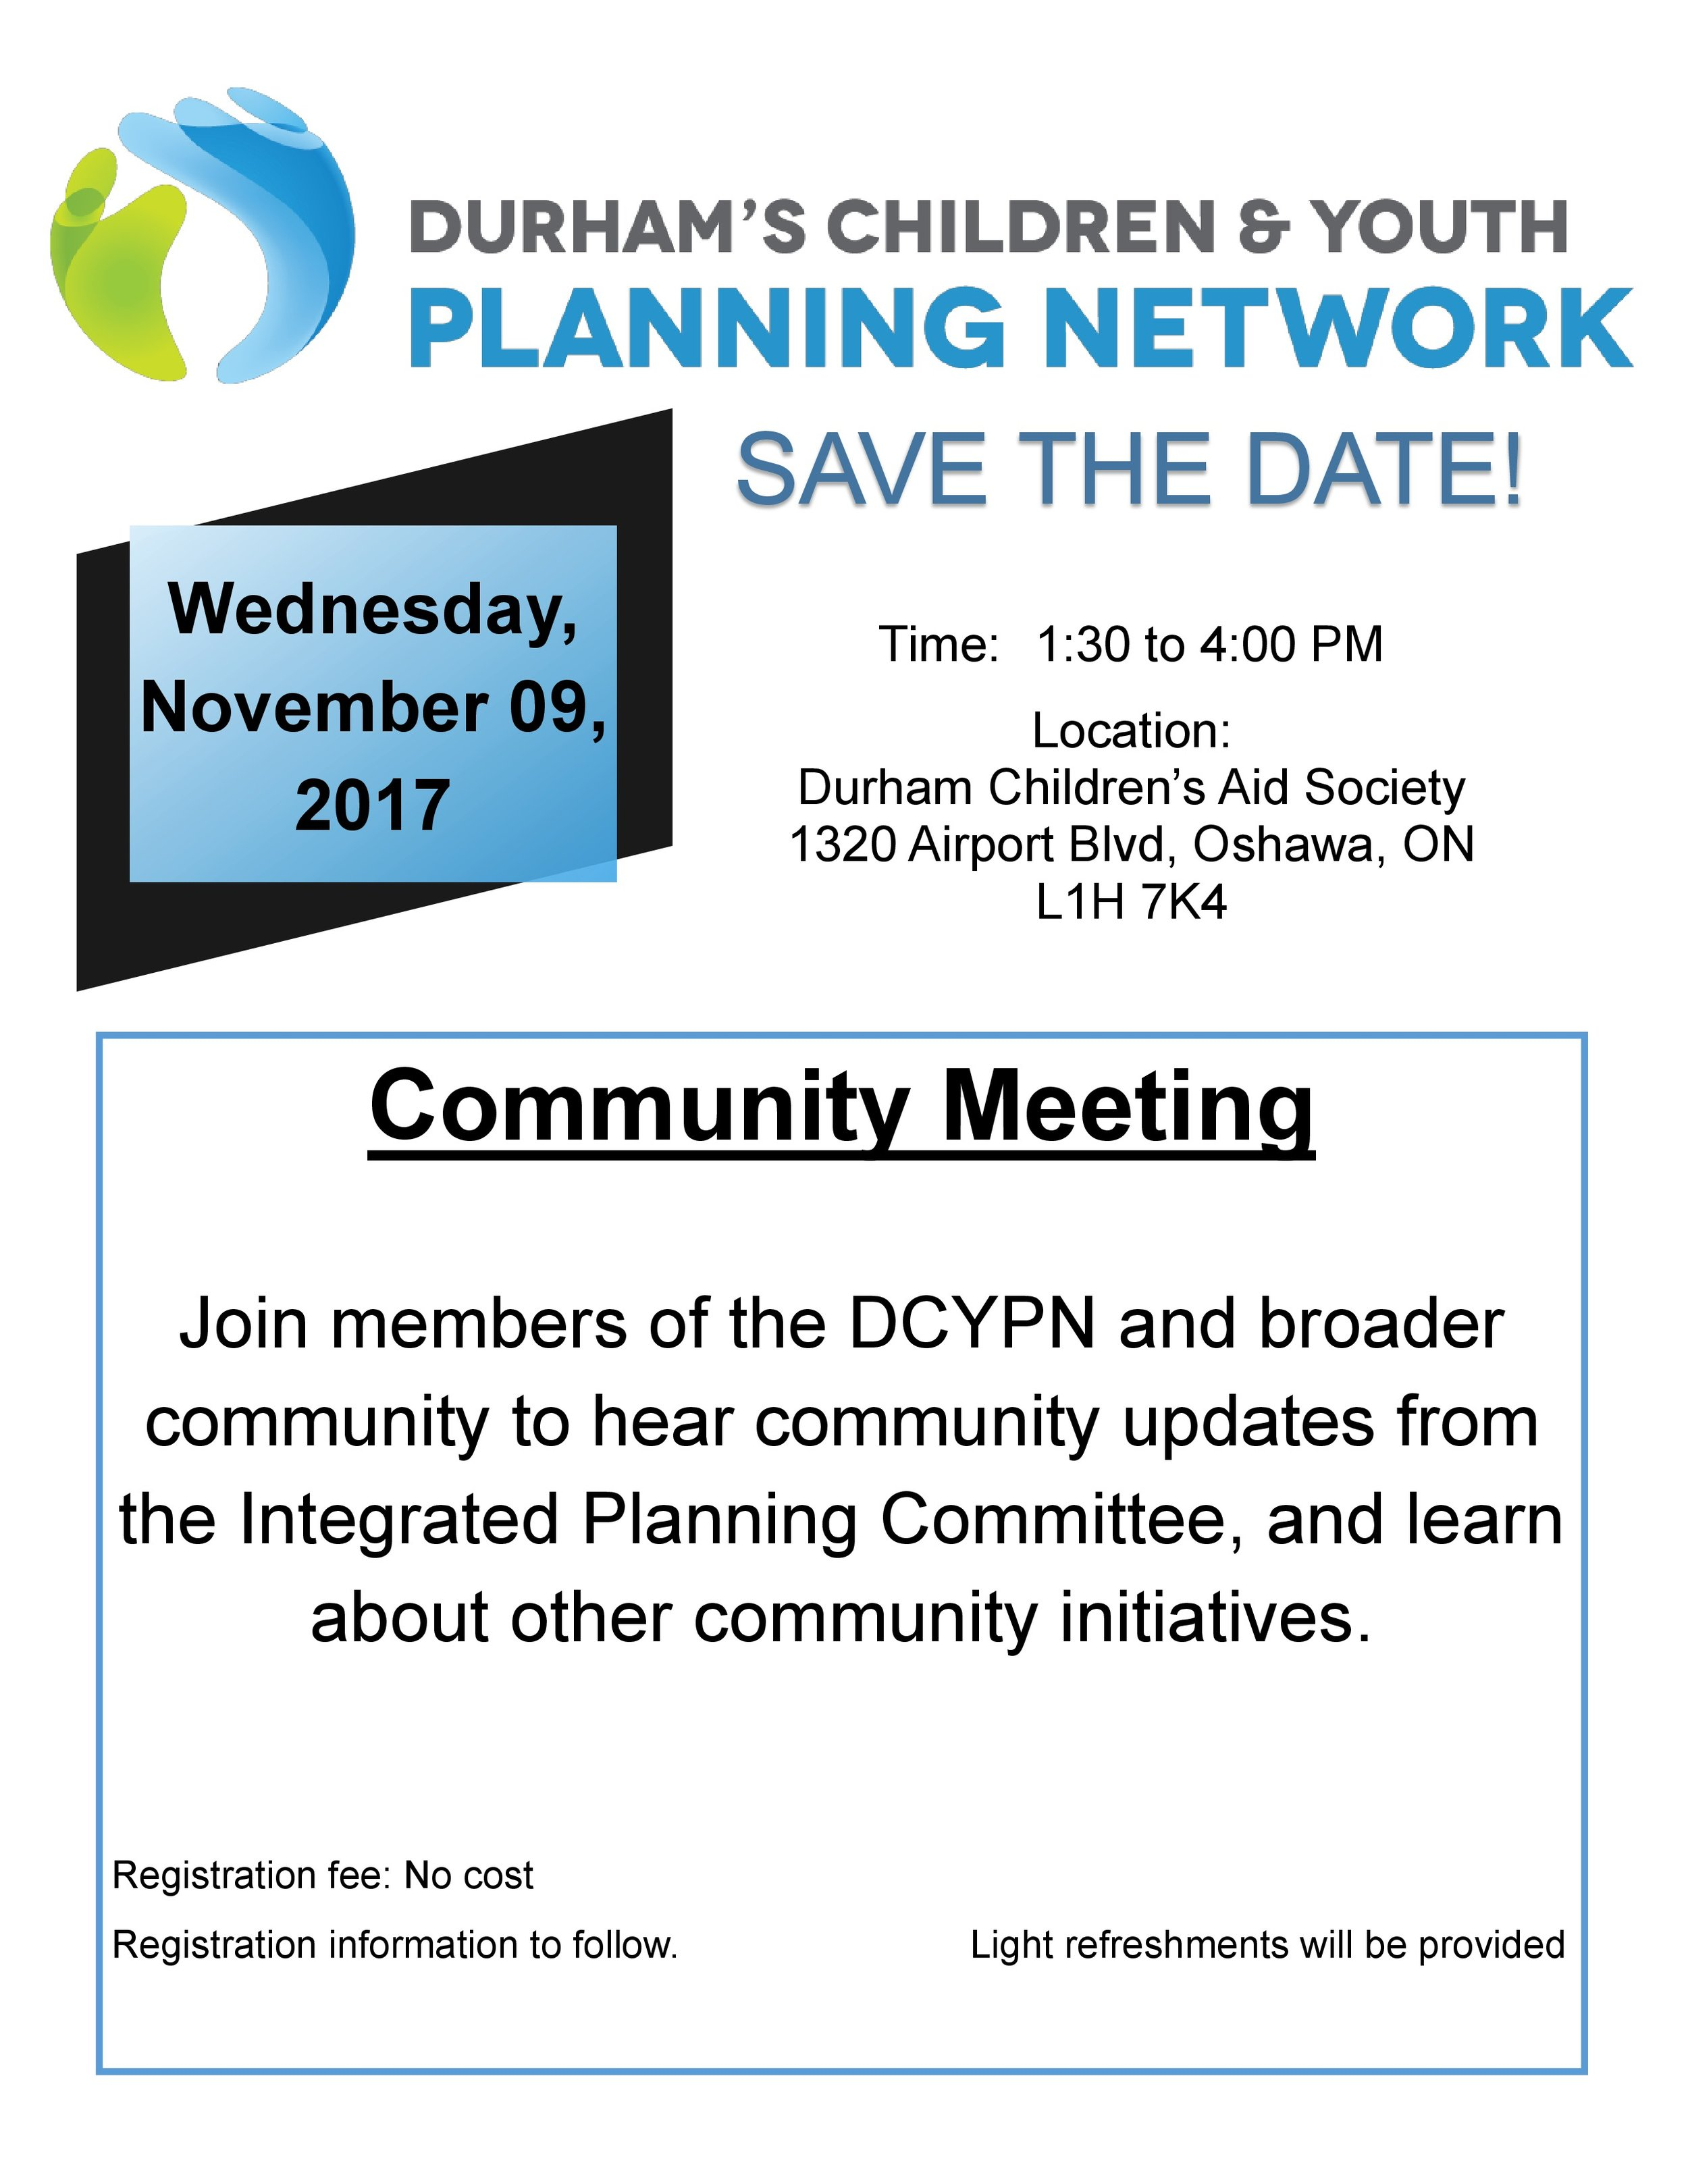 2017-11-09 DCYPN Community Meeting Save the Date-page-0.jpg